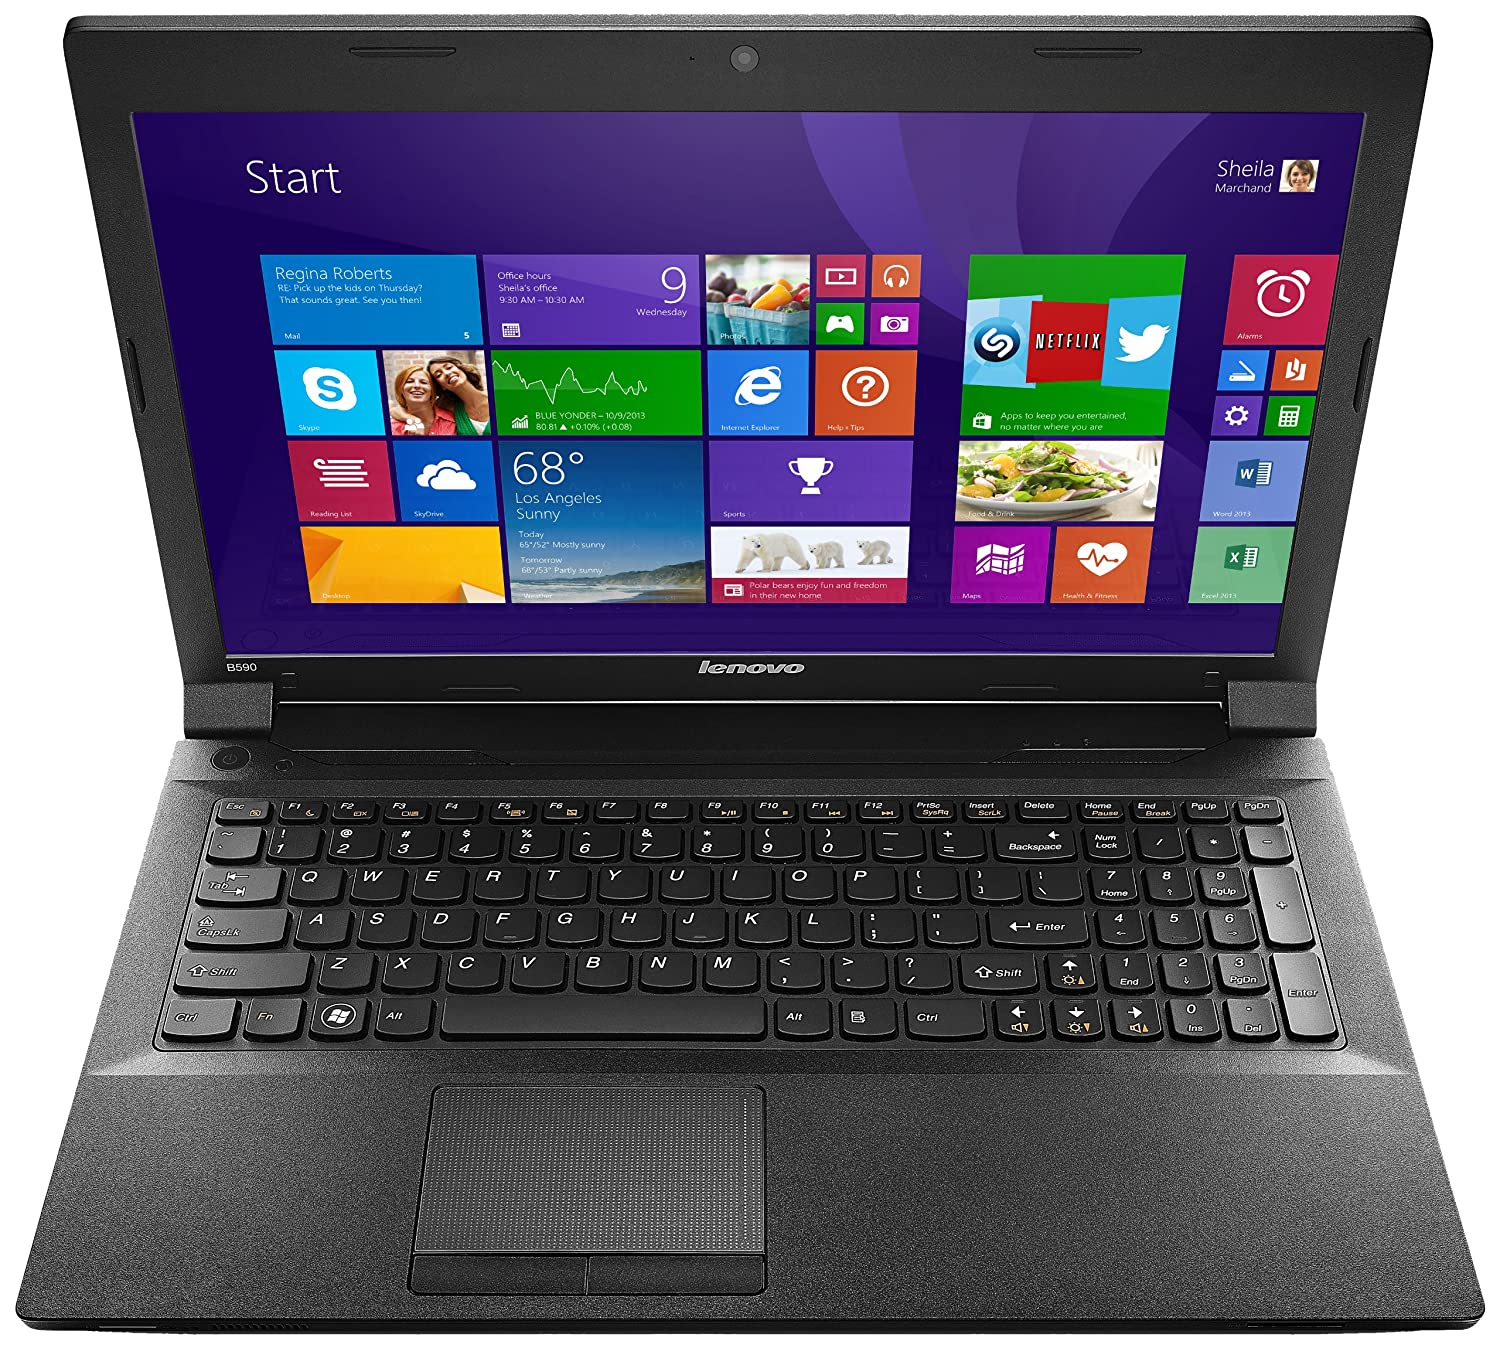 Lenovo IdeaPad 59410452 15.6-Inch Laptop